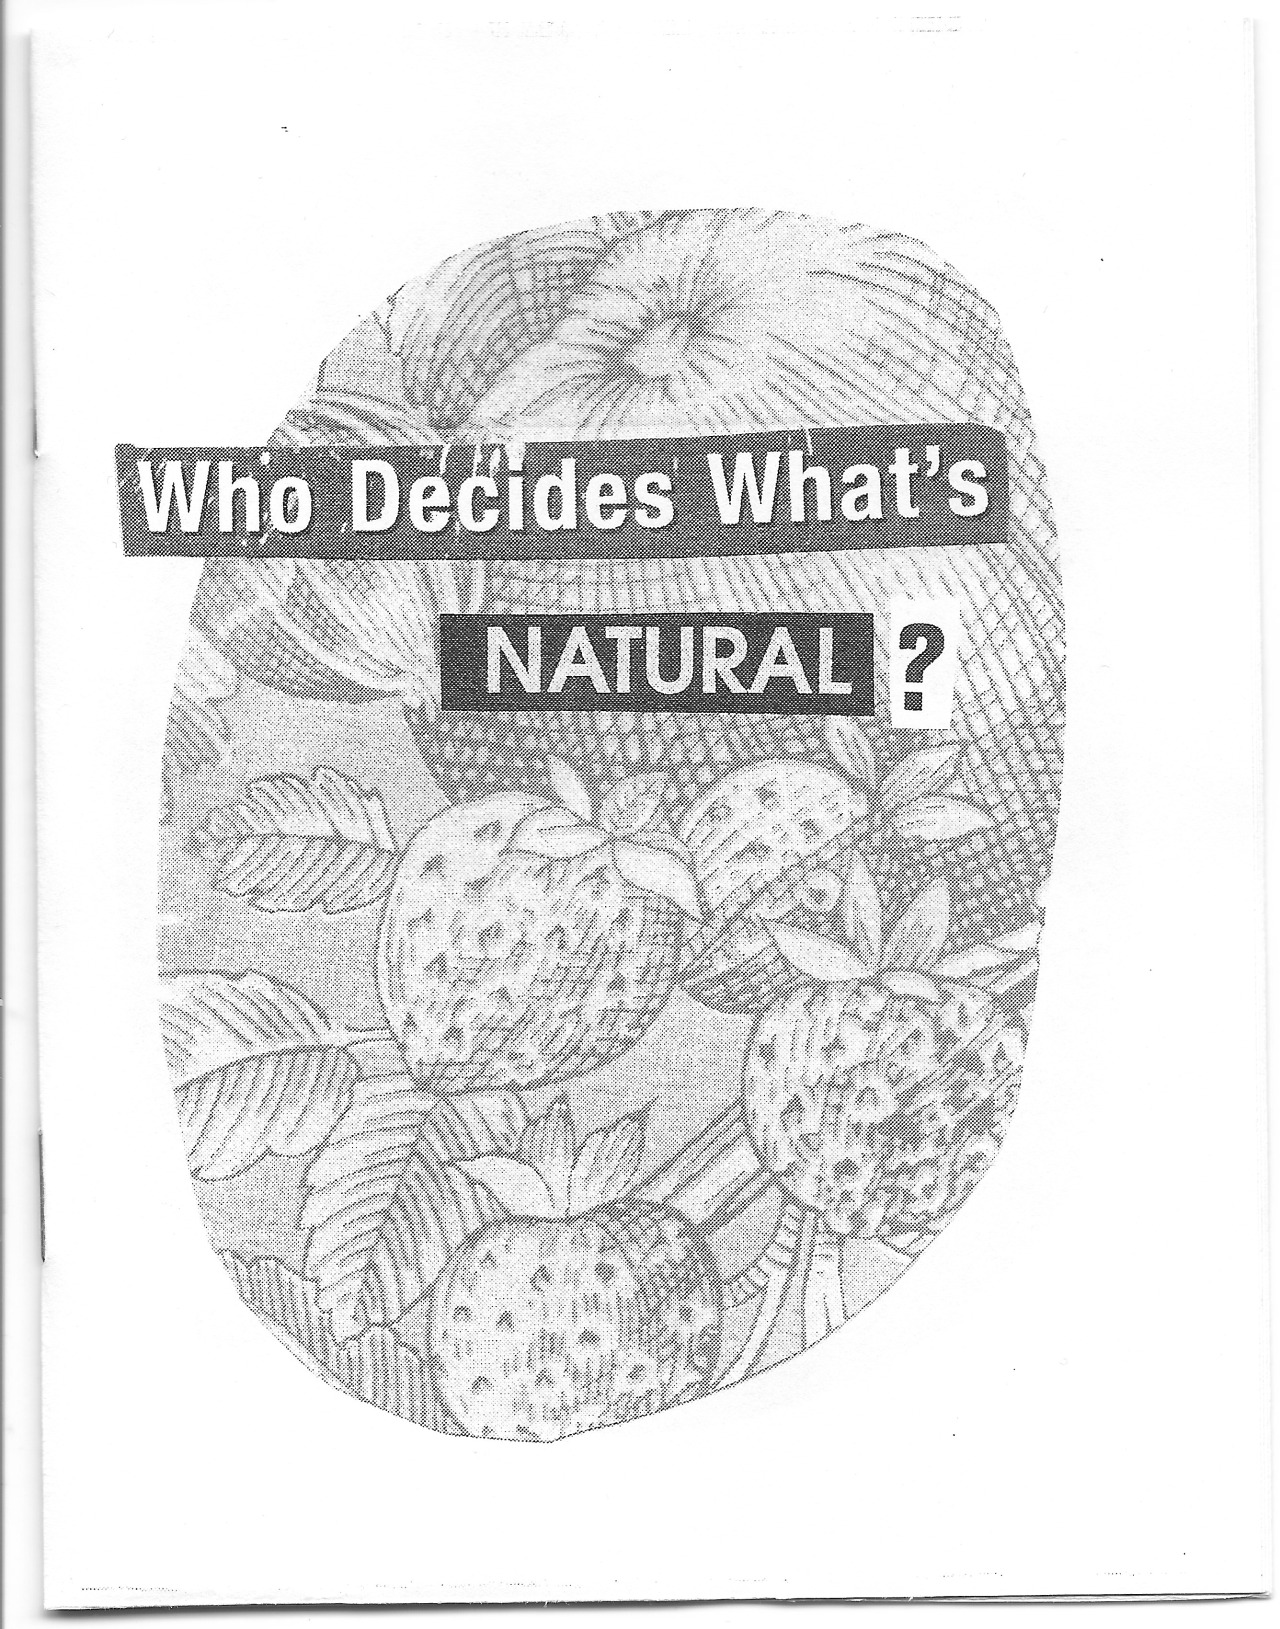 who decides what's natural?